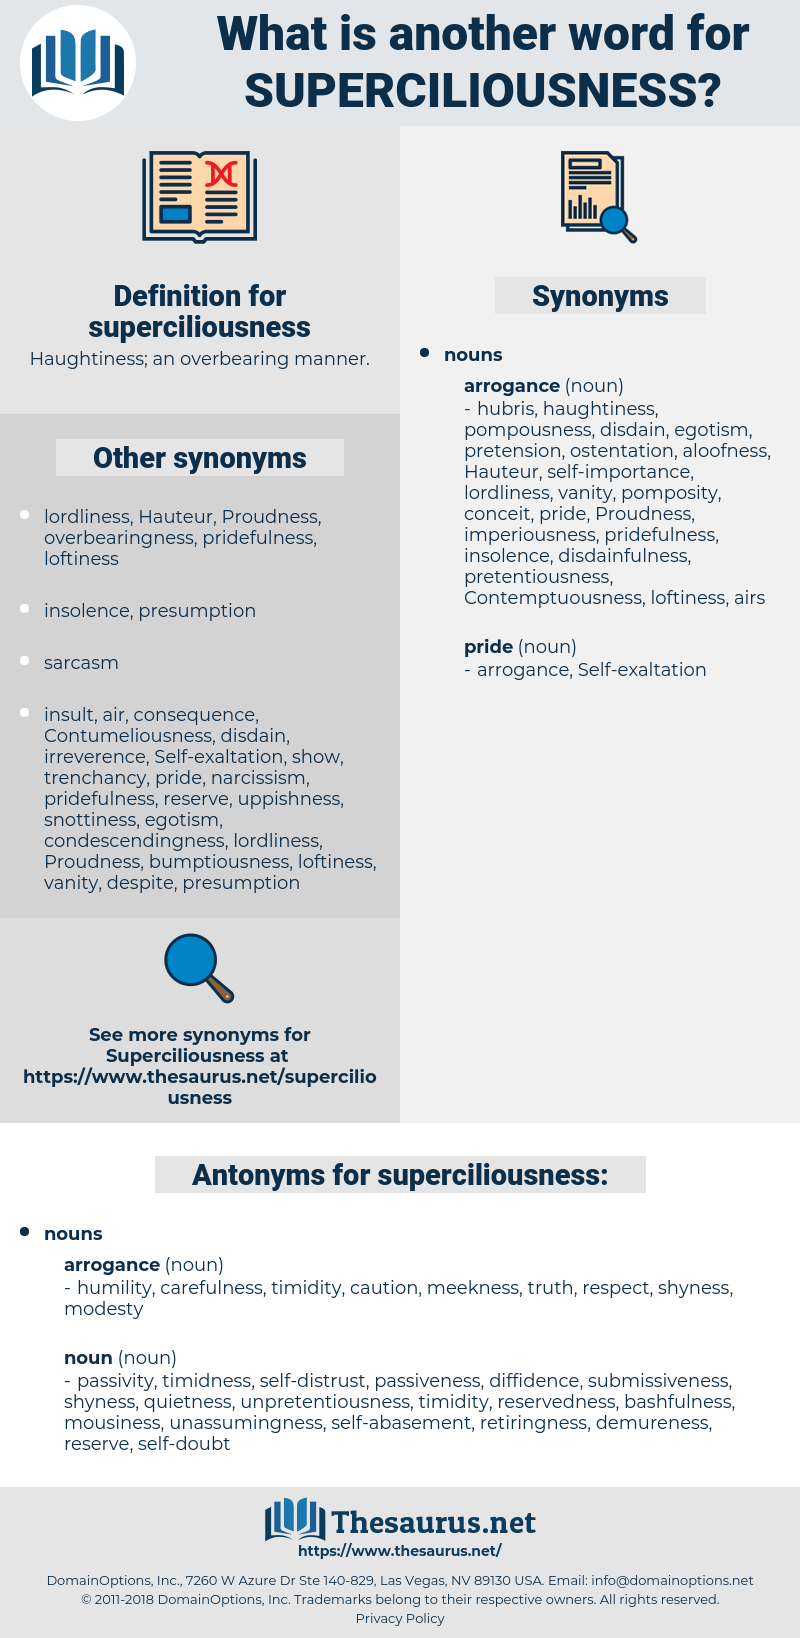 superciliousness, synonym superciliousness, another word for superciliousness, words like superciliousness, thesaurus superciliousness